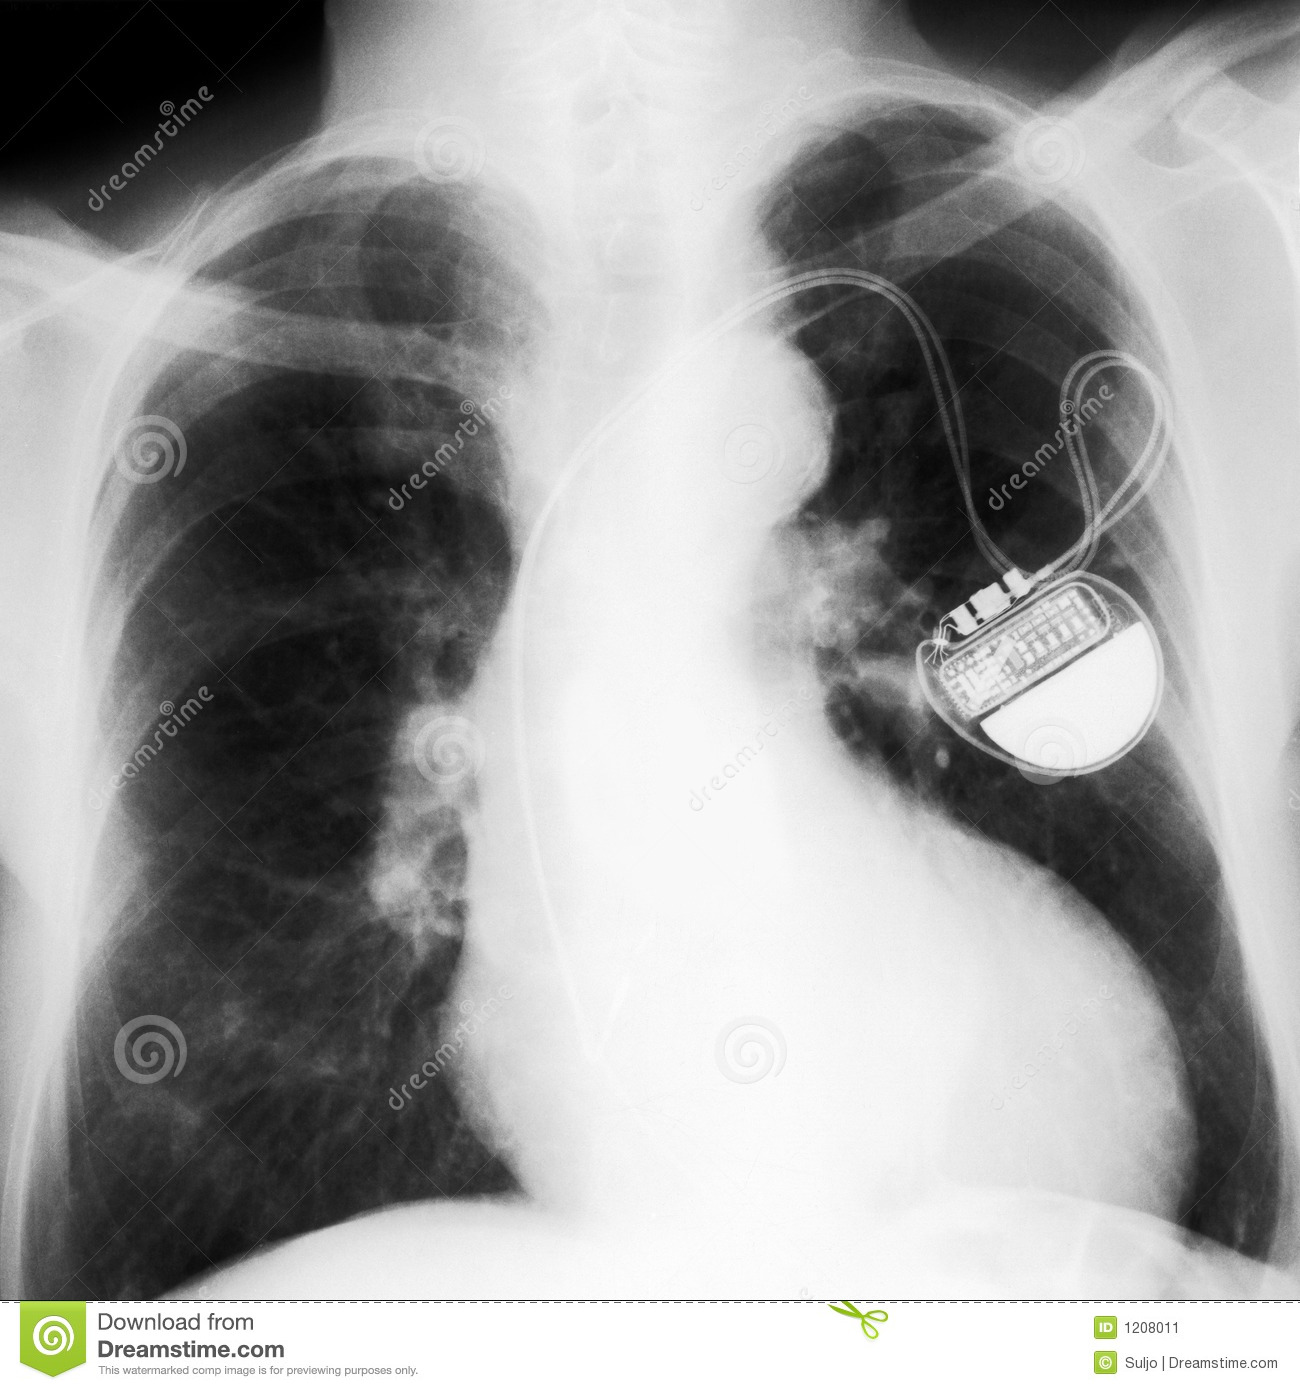 X-rayed chest